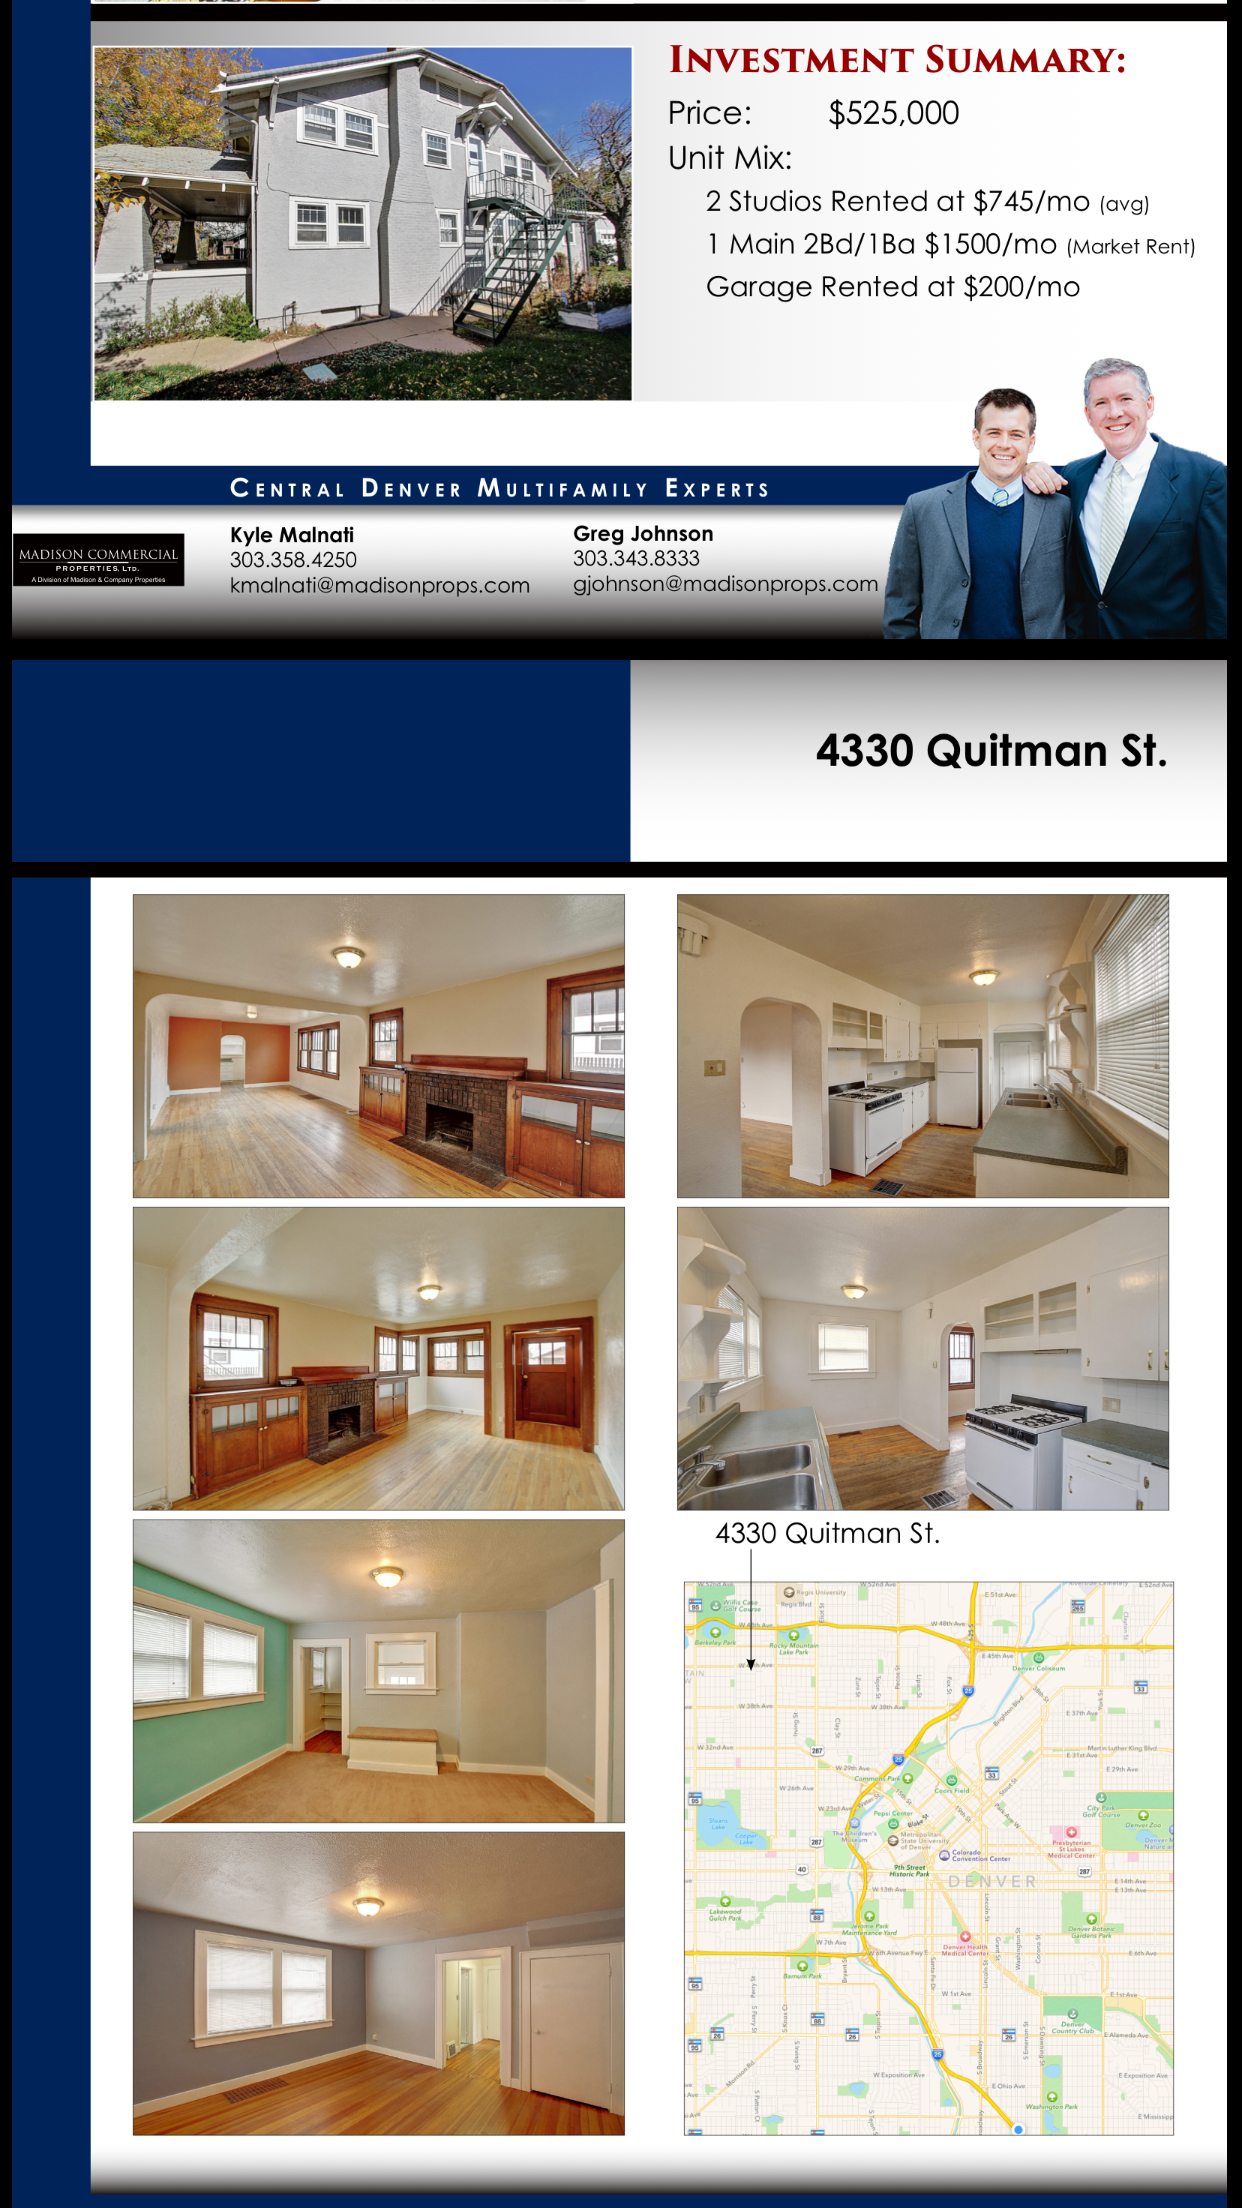 4330 quitman denver triplex sale berkeley denver apartment about madison commercial properties is a denver based commercial real estate firm specializing in apartment brokerage and investment sales in central solutioingenieria Images